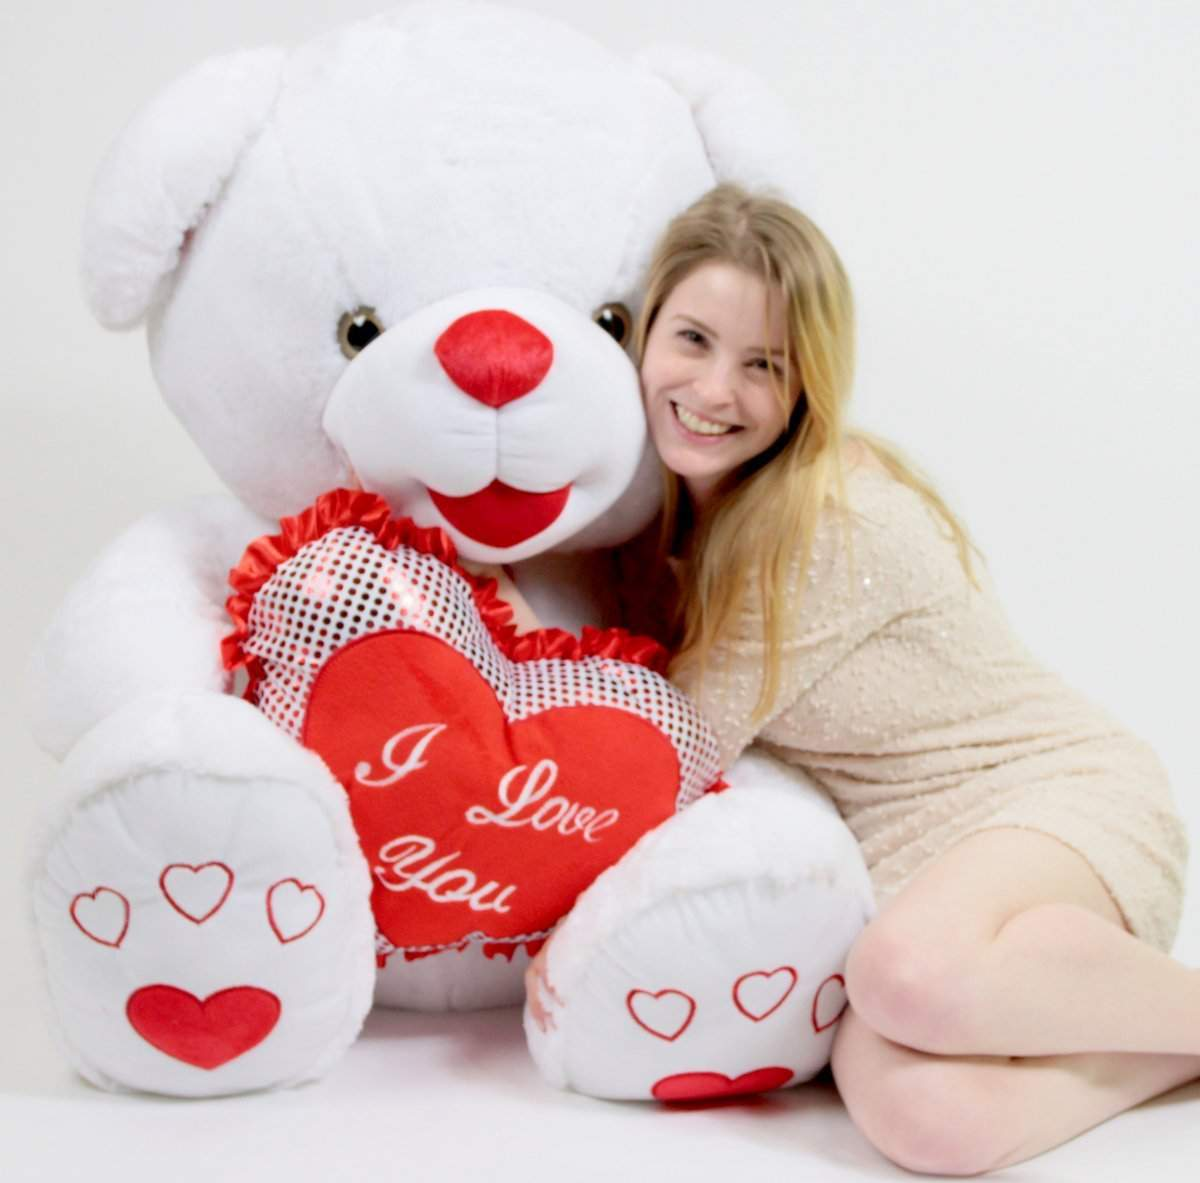 Romantic Giant Teddy Bear 40 inch Soft White with Big Plush I LOVE YOU Heart by BigPlush